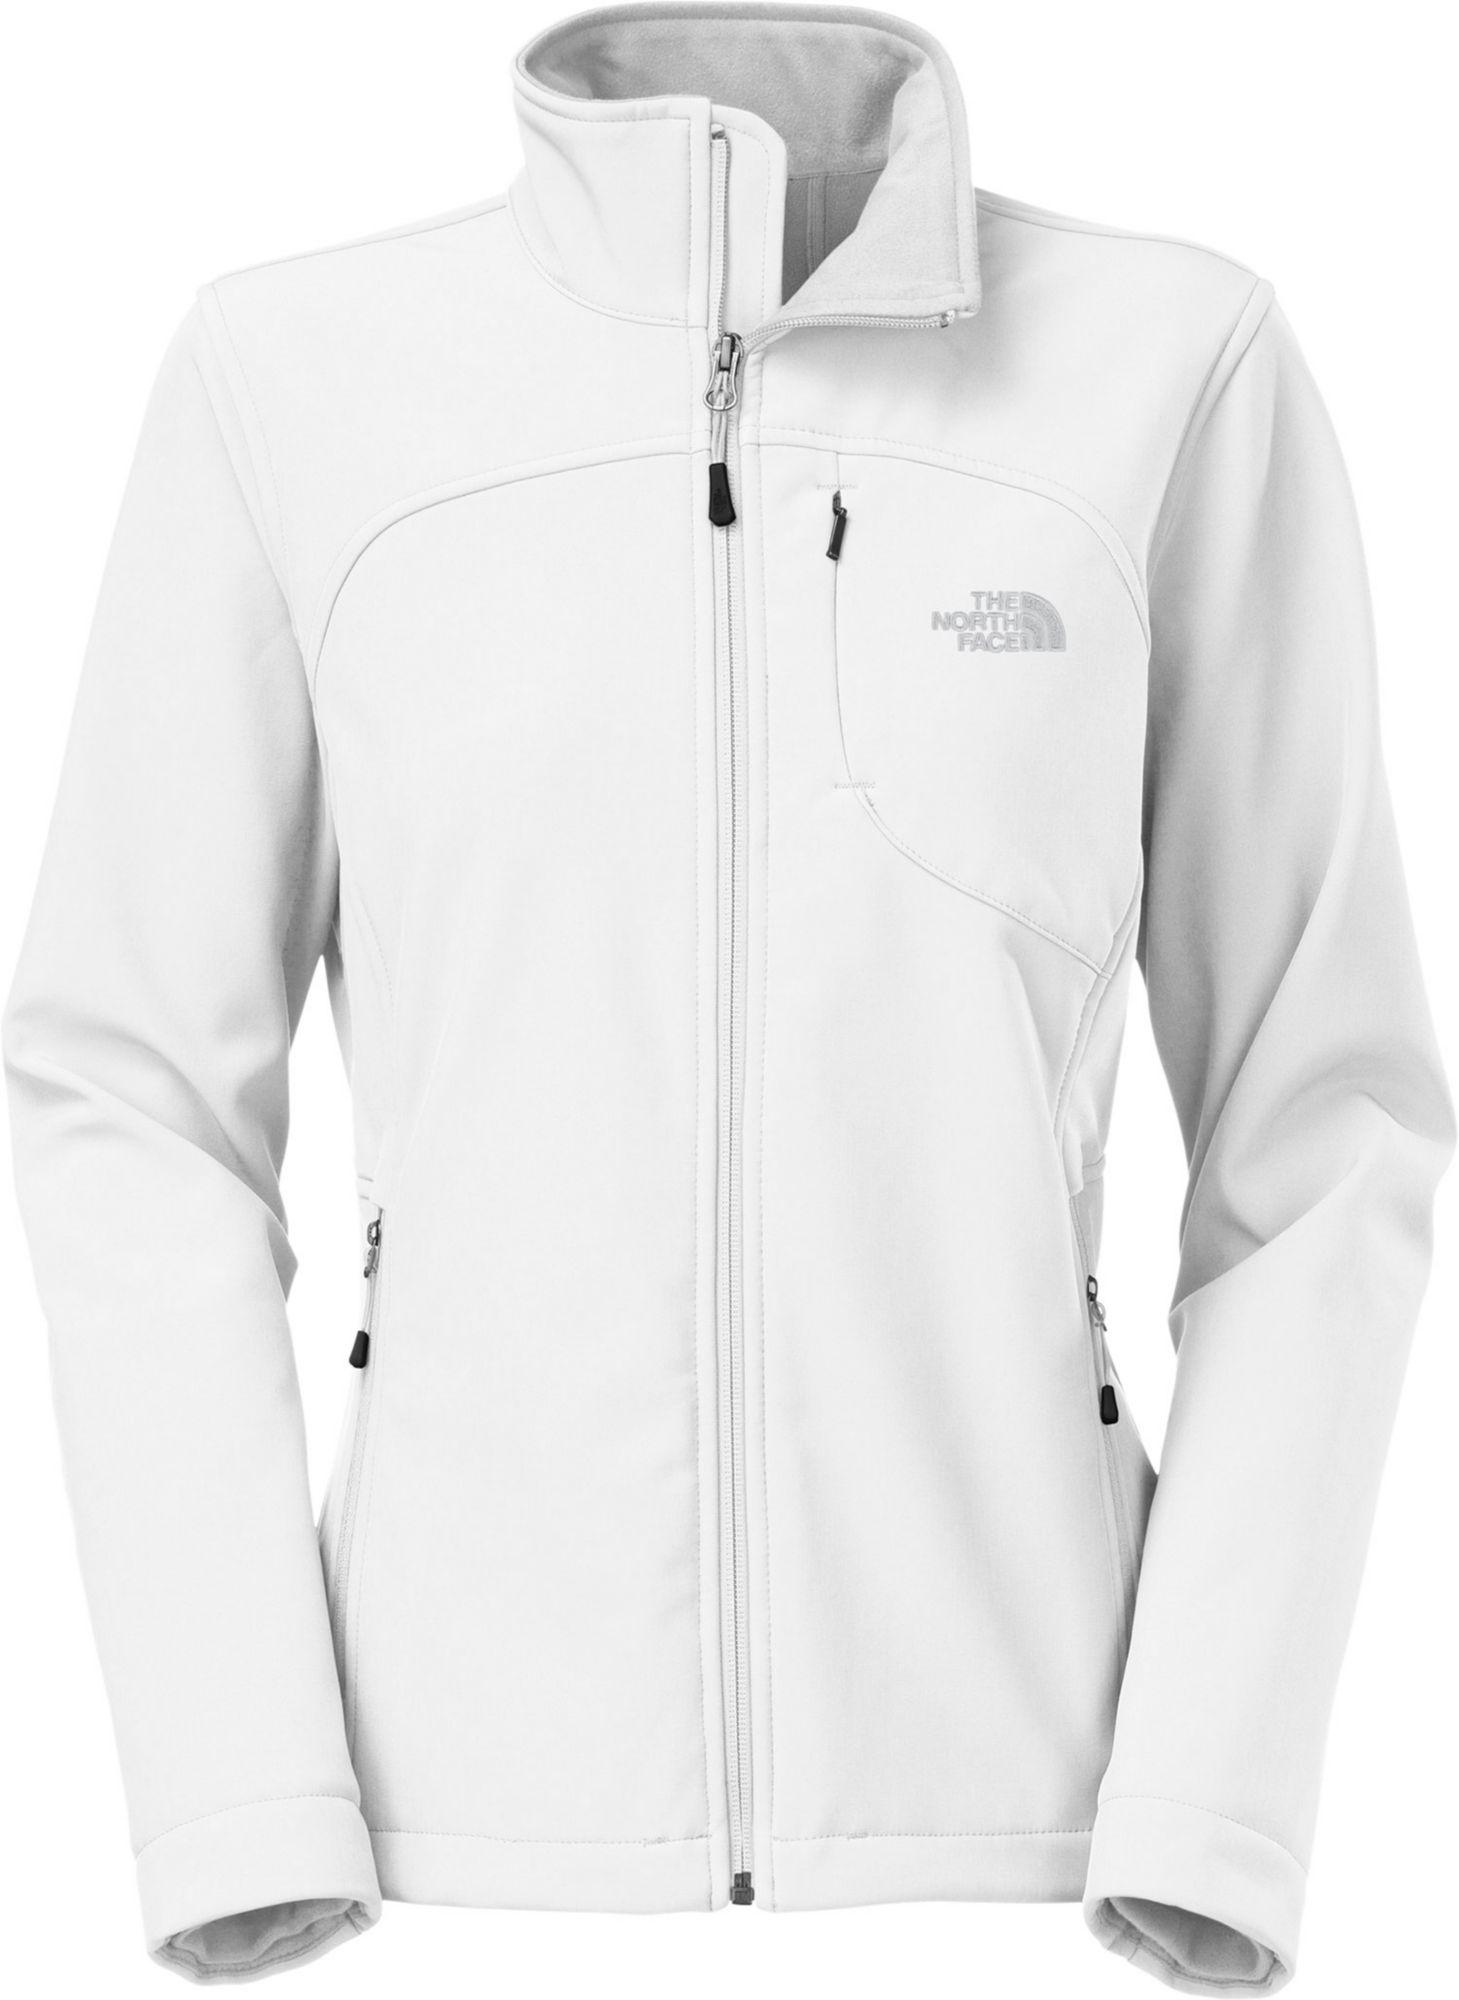 bdf0de2a618f Lyst - The North Face Apex Bionic Soft Shell Jacket in White